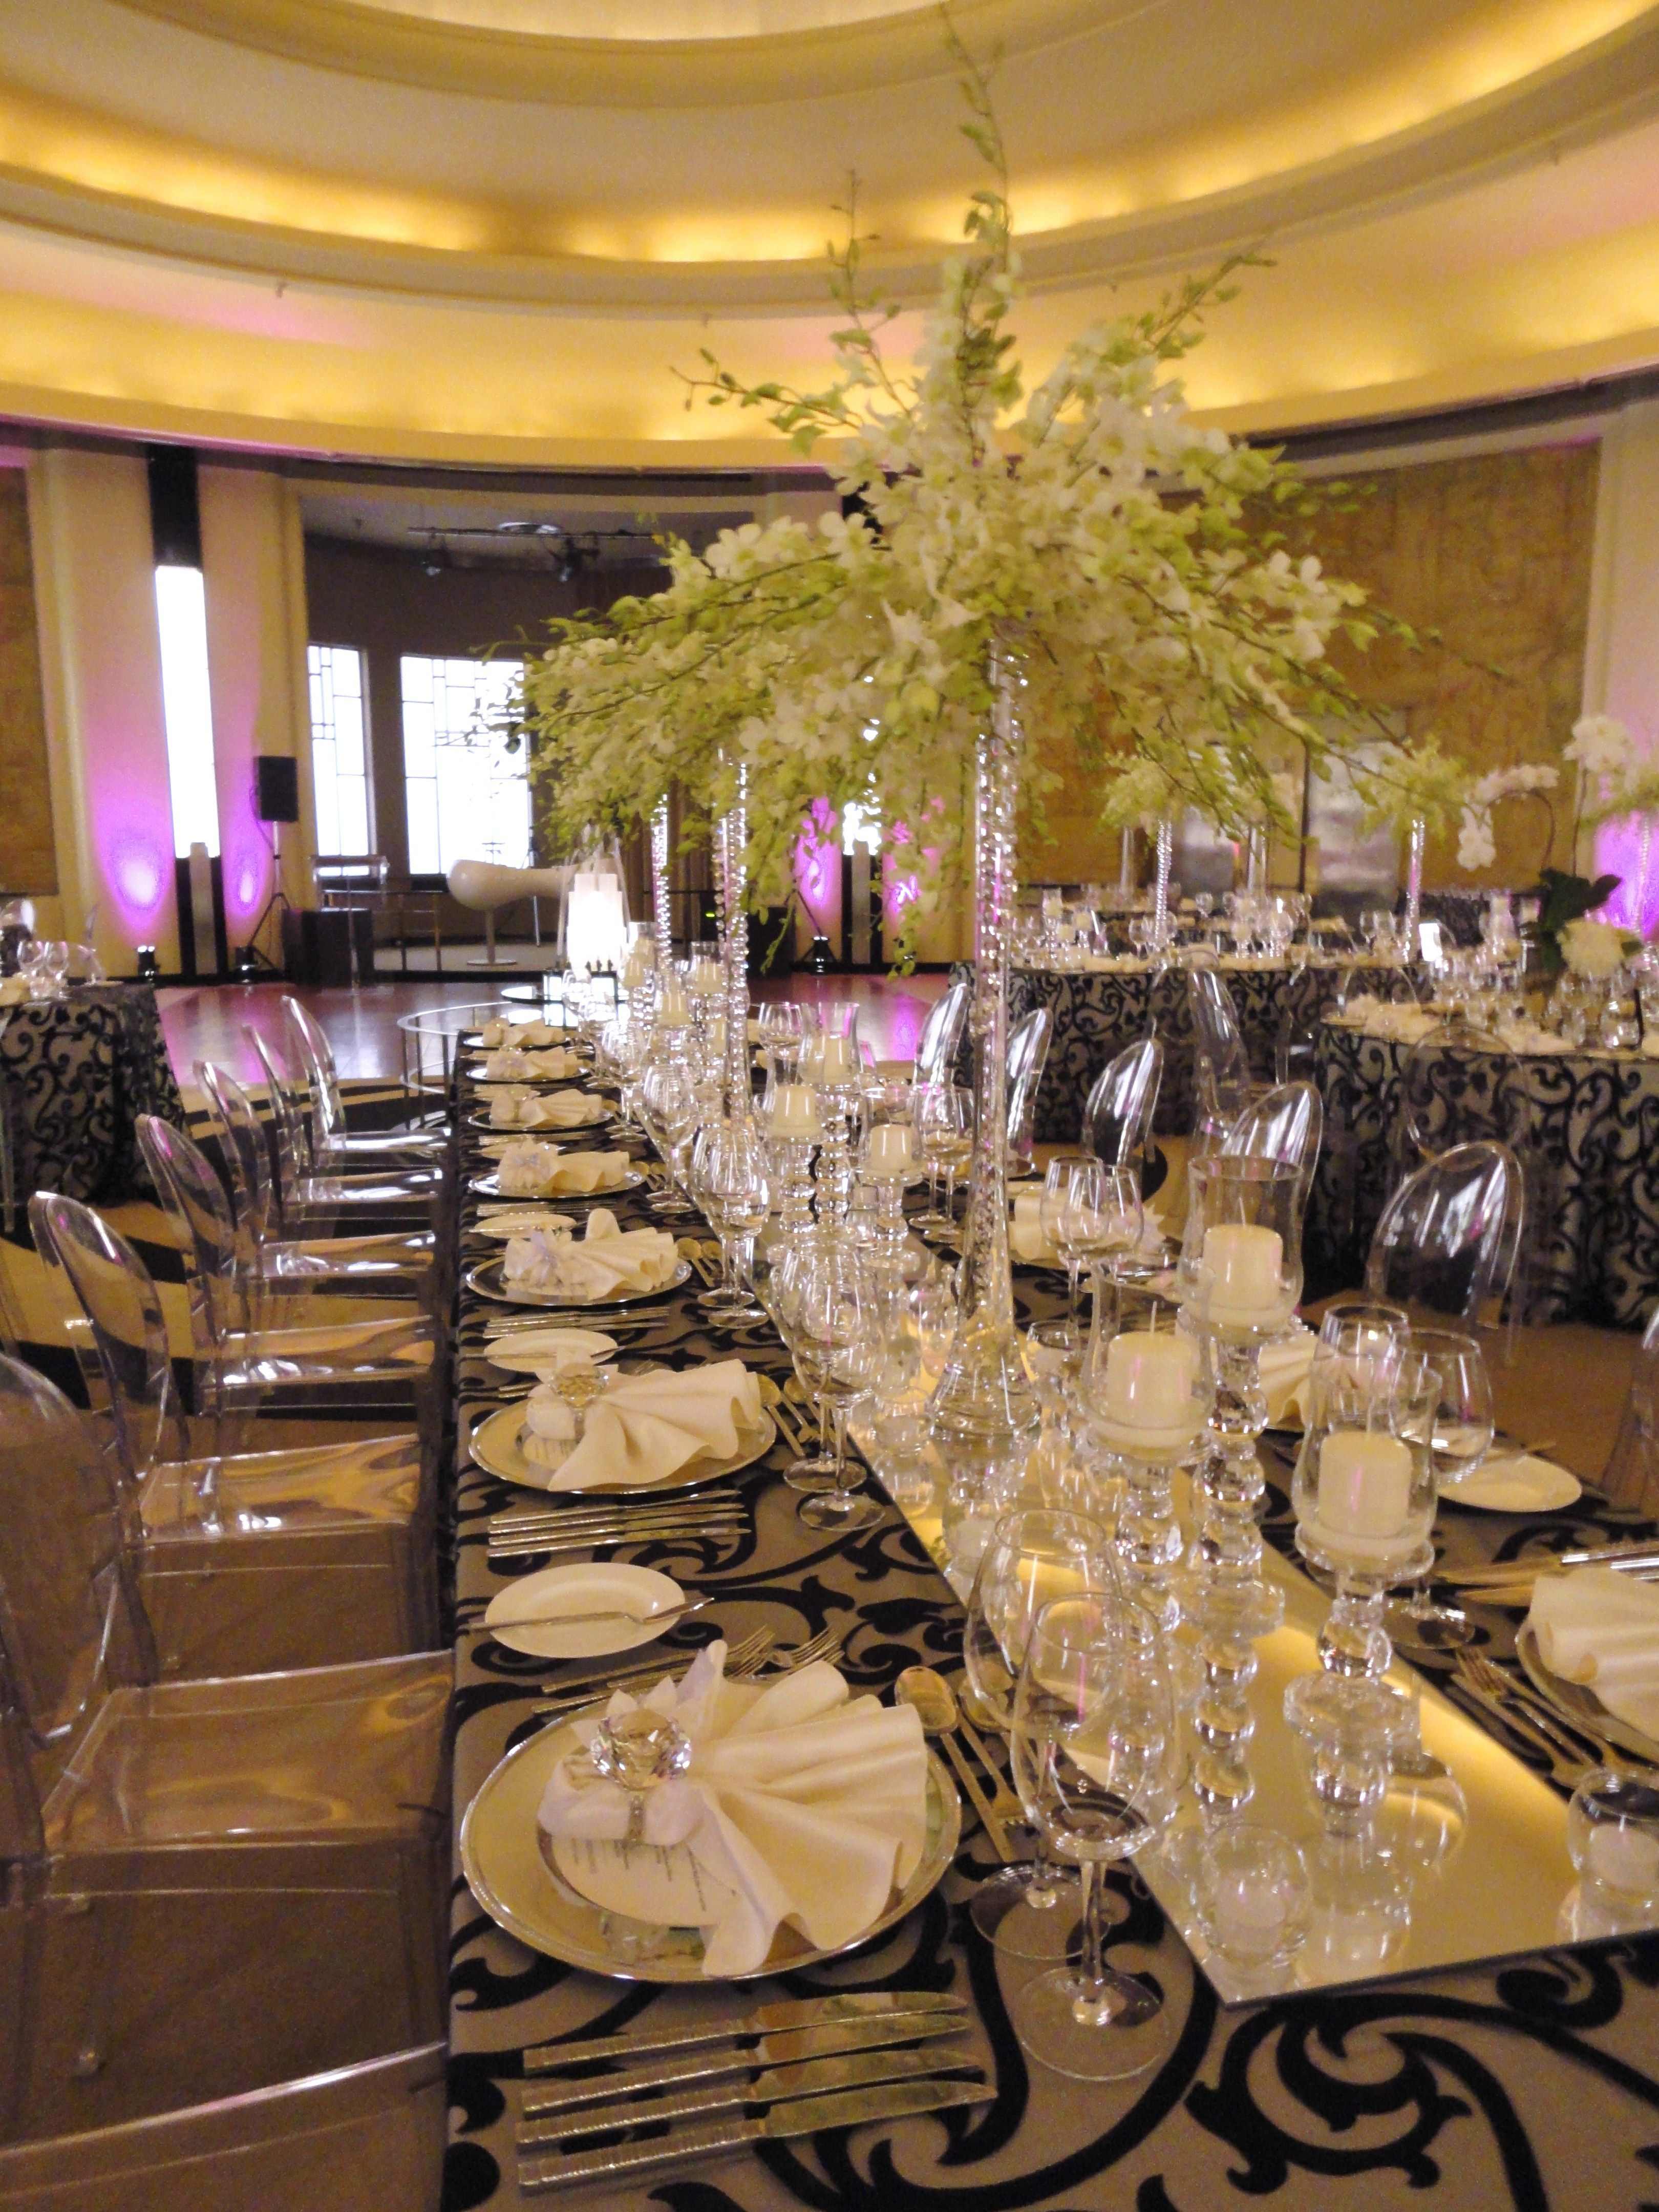 Beautiful Mirrored Table Runner To Enhance The Plethora Crystal Votives And Candelabras In Round Room